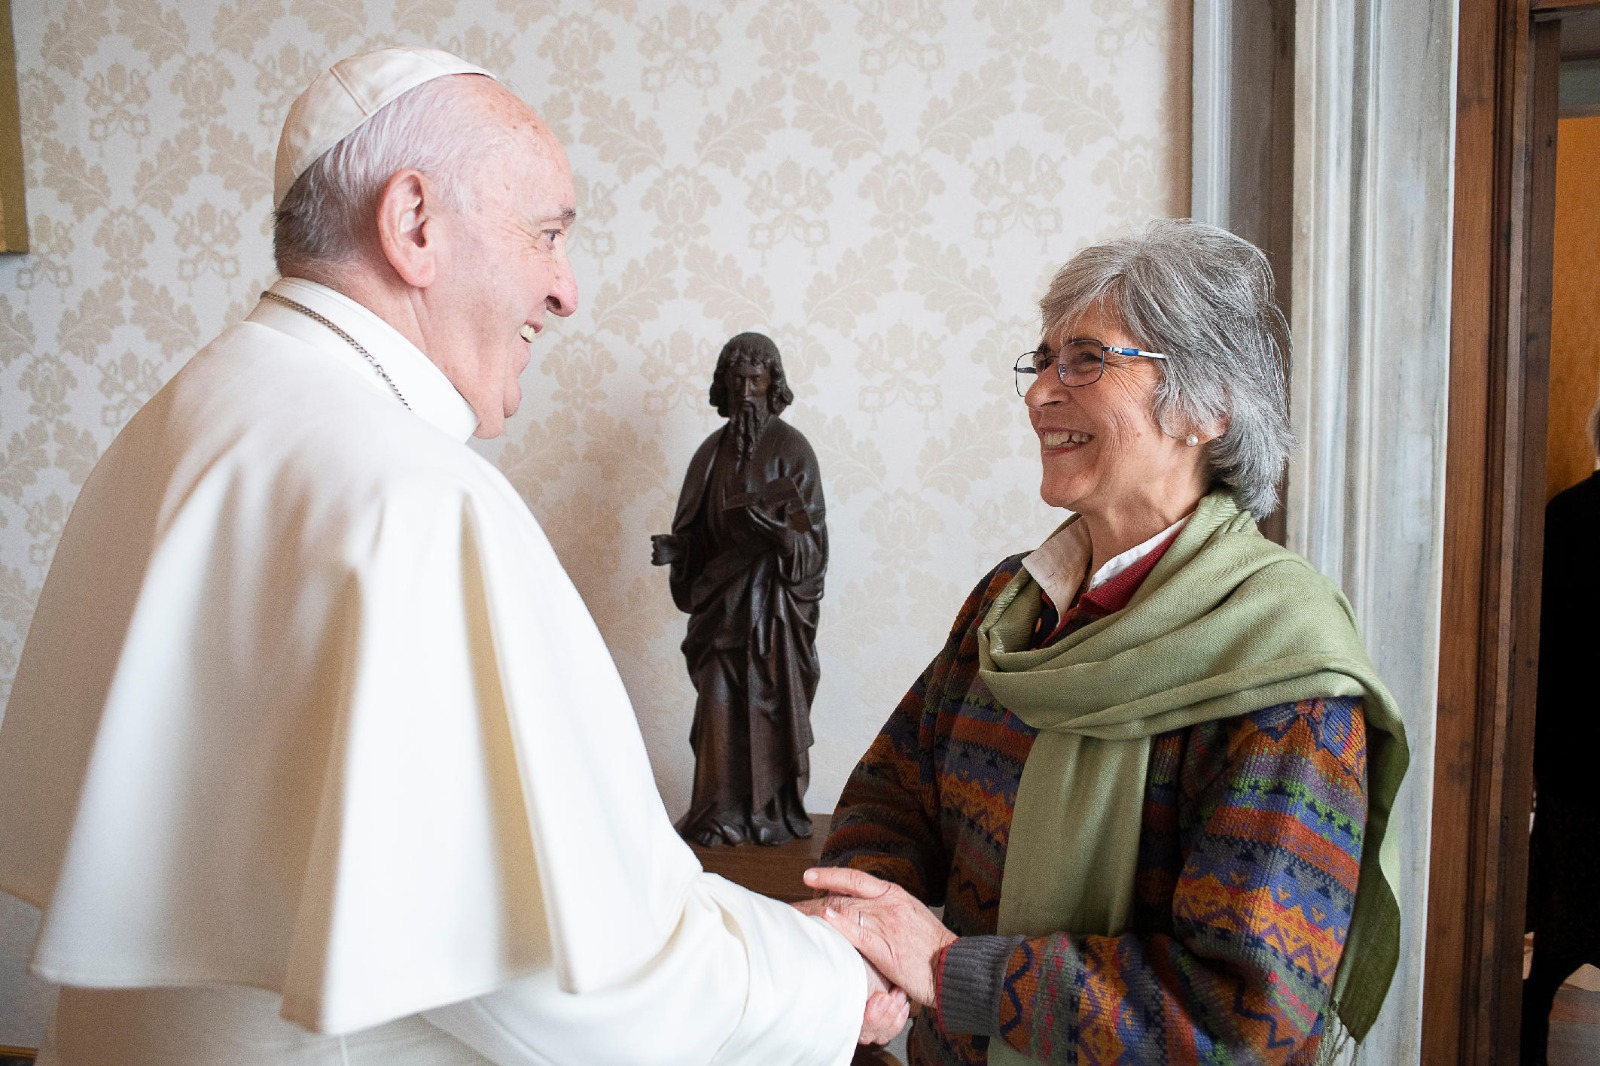 The author, María Lía Zervino, meets with Pope Francis at the Vatican on Jan. 20, 2020. (Provided by author)